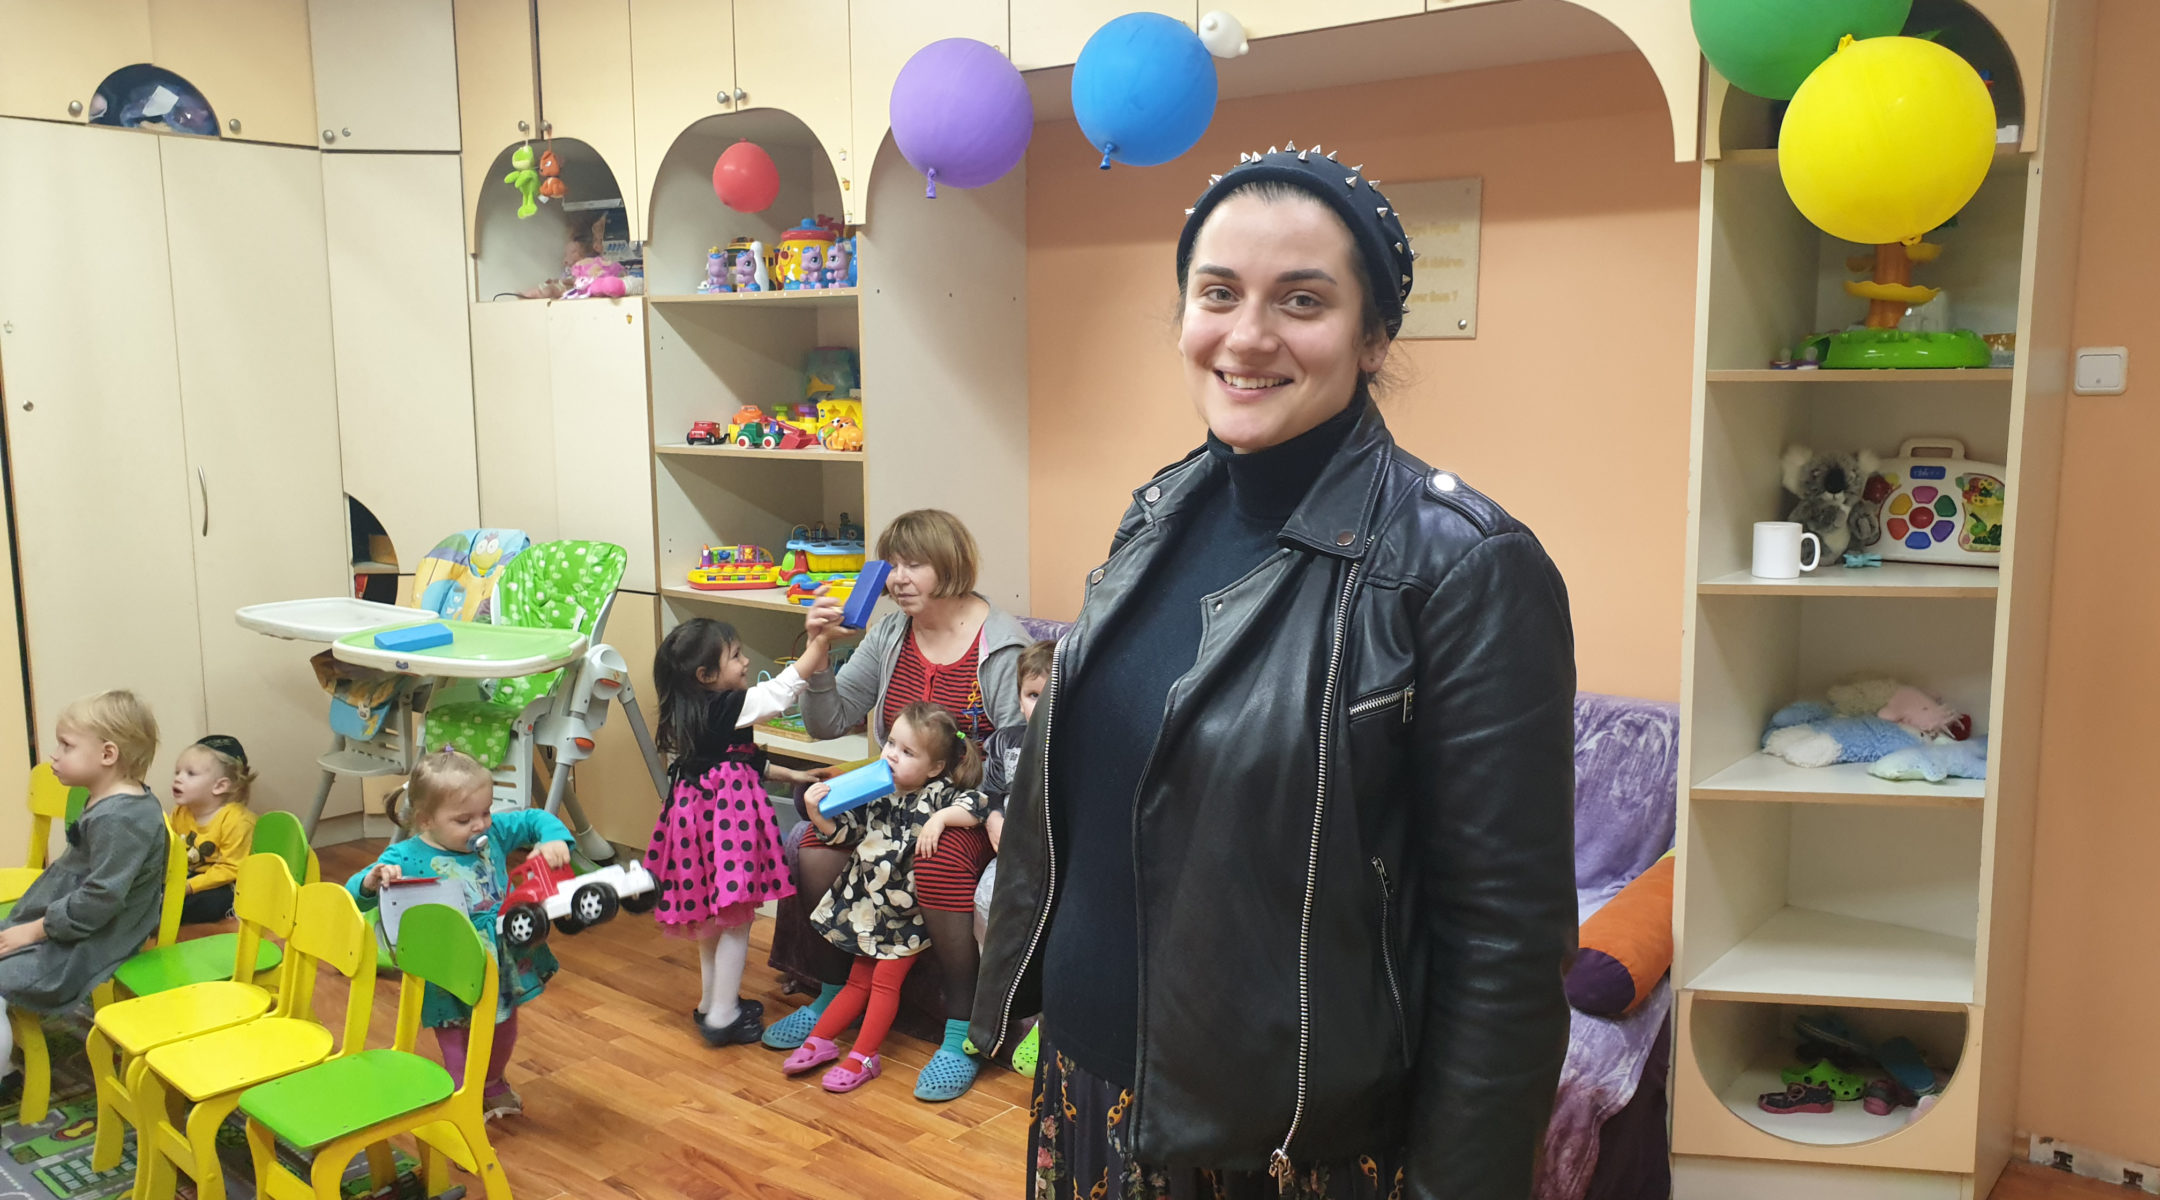 Alina Feoktistova at the Tikva Jewish education complex in Odessa, Ukraine on Nov. 2, 2019. (Cnaan Liphshiz)